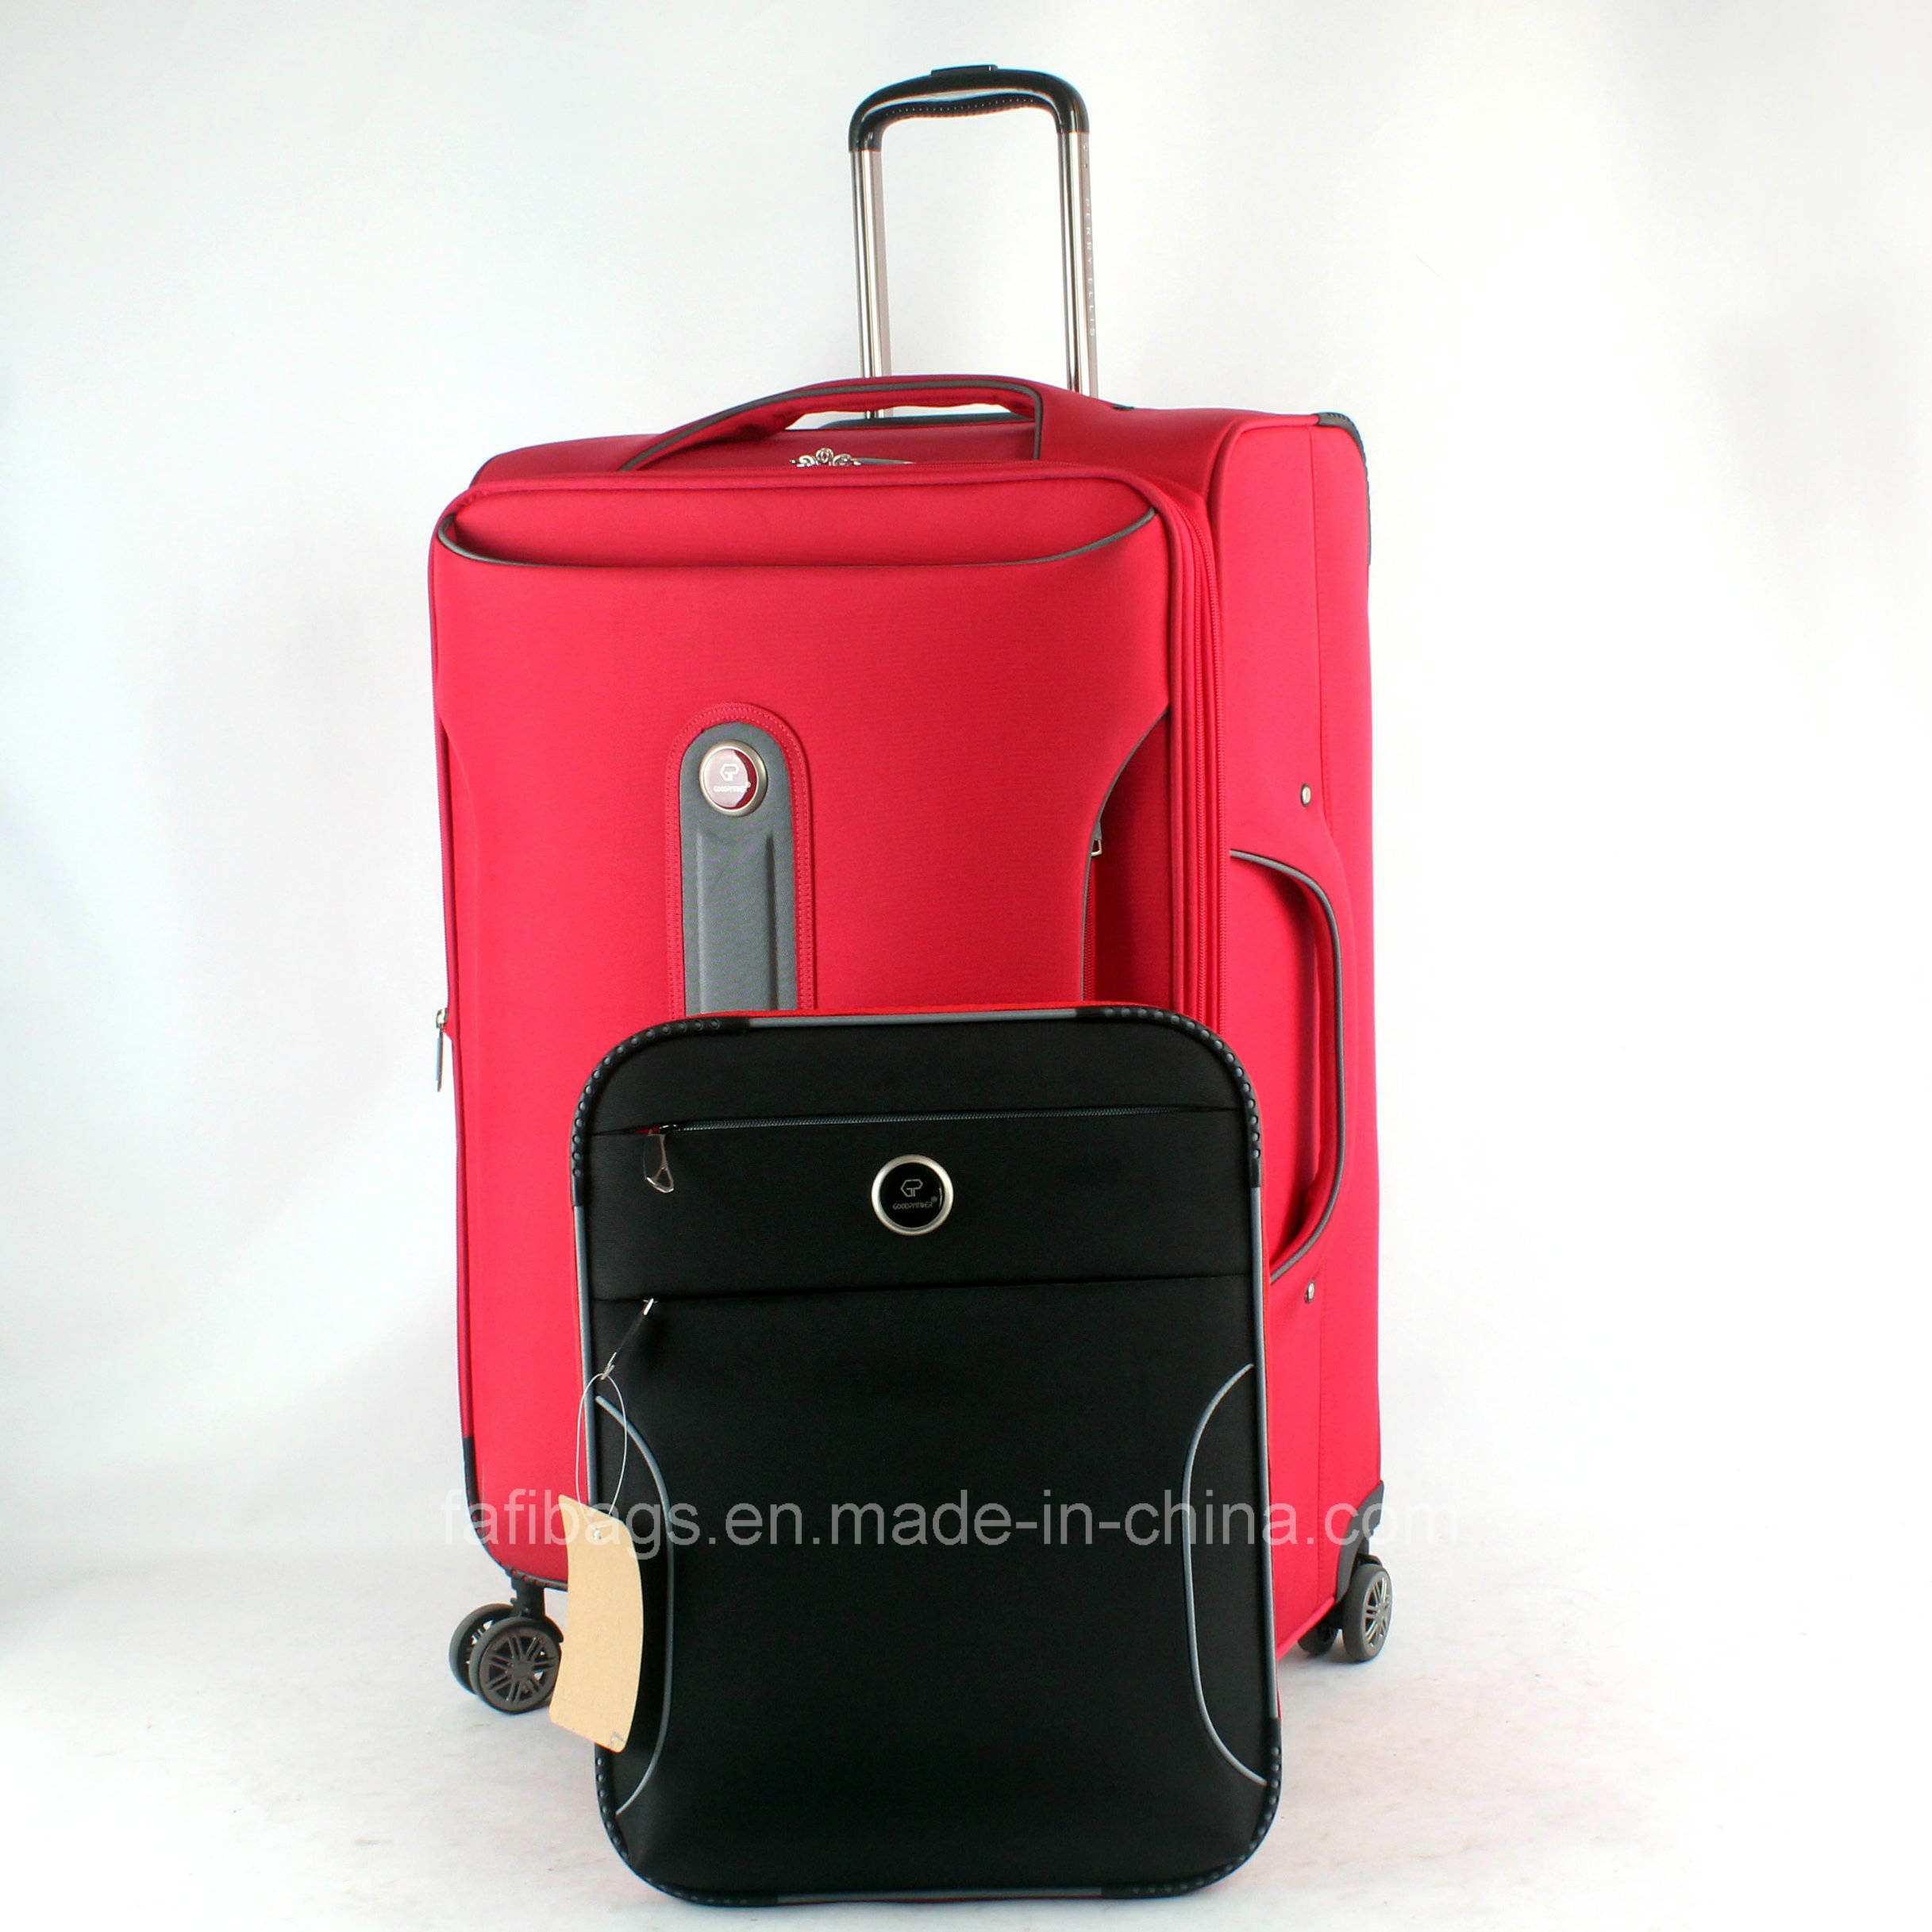 High Quality Luggage Sets Travel Style Luggage Bag Set